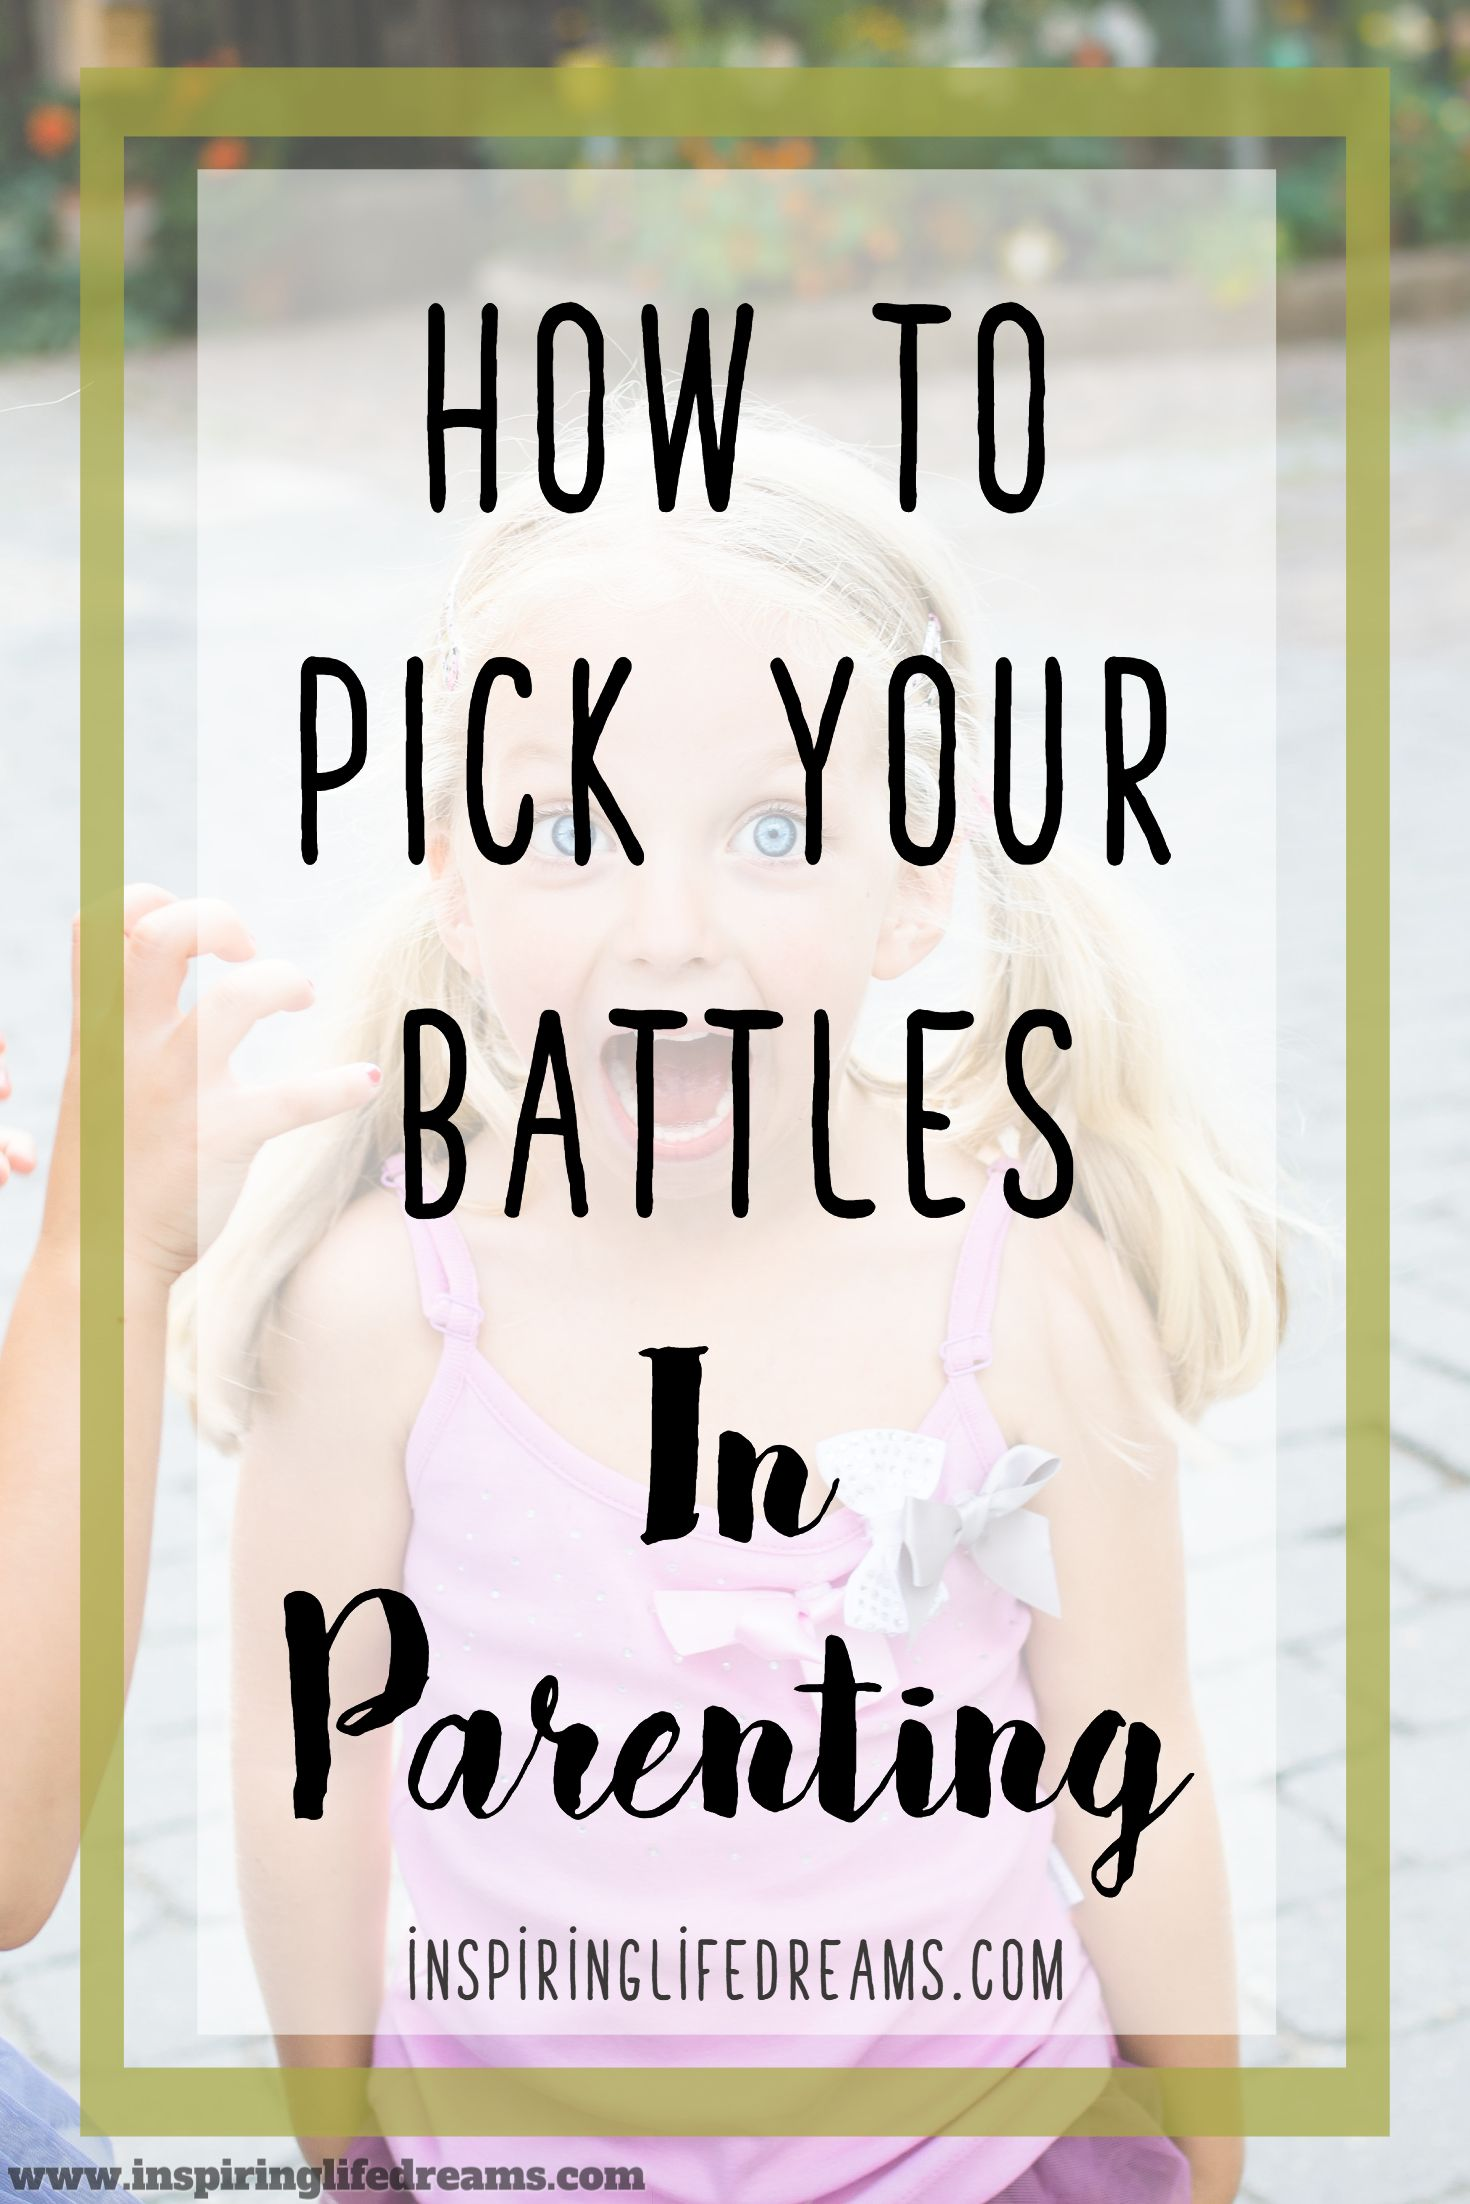 How To Pick Your Battles Wisely In Parenting